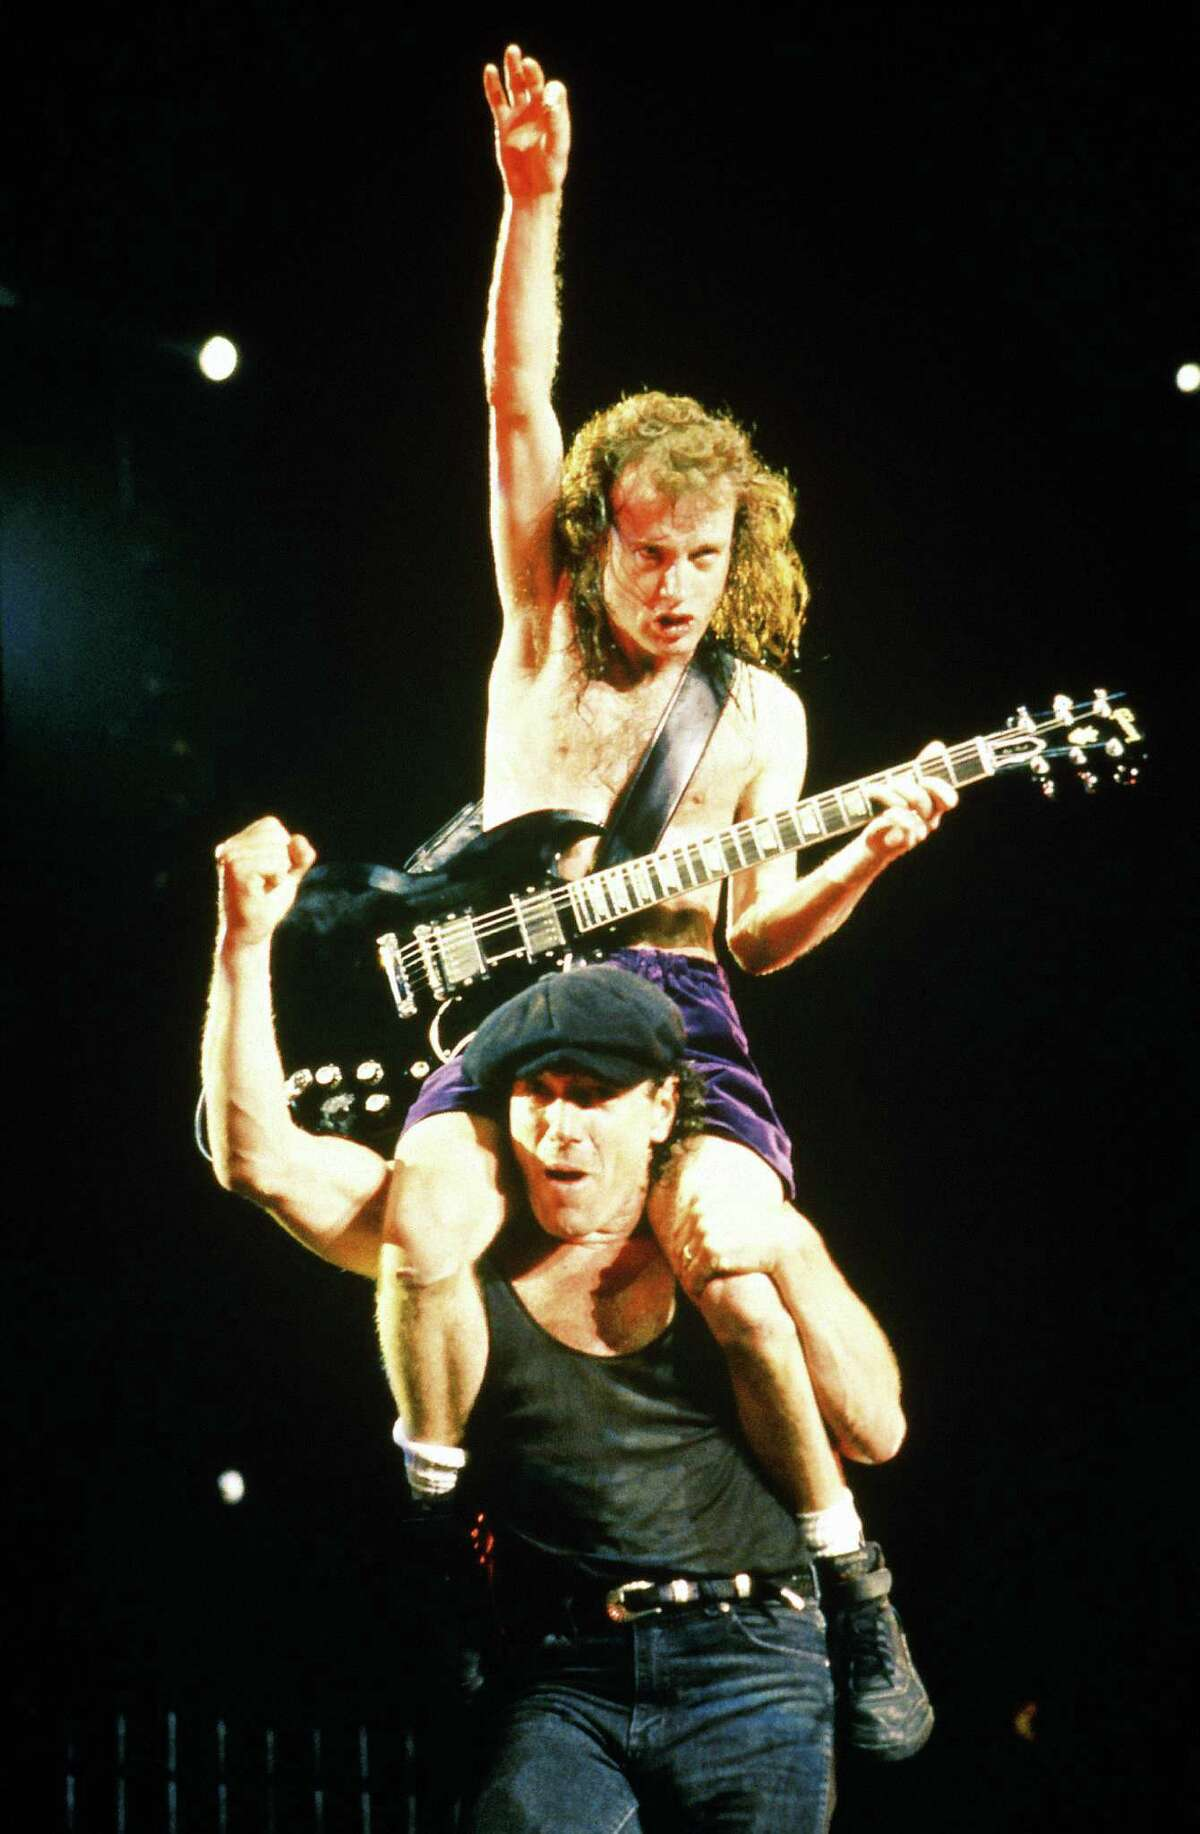 Multiple readers saw AC/DC in the '80s for their first concert. John Stanford recalls,